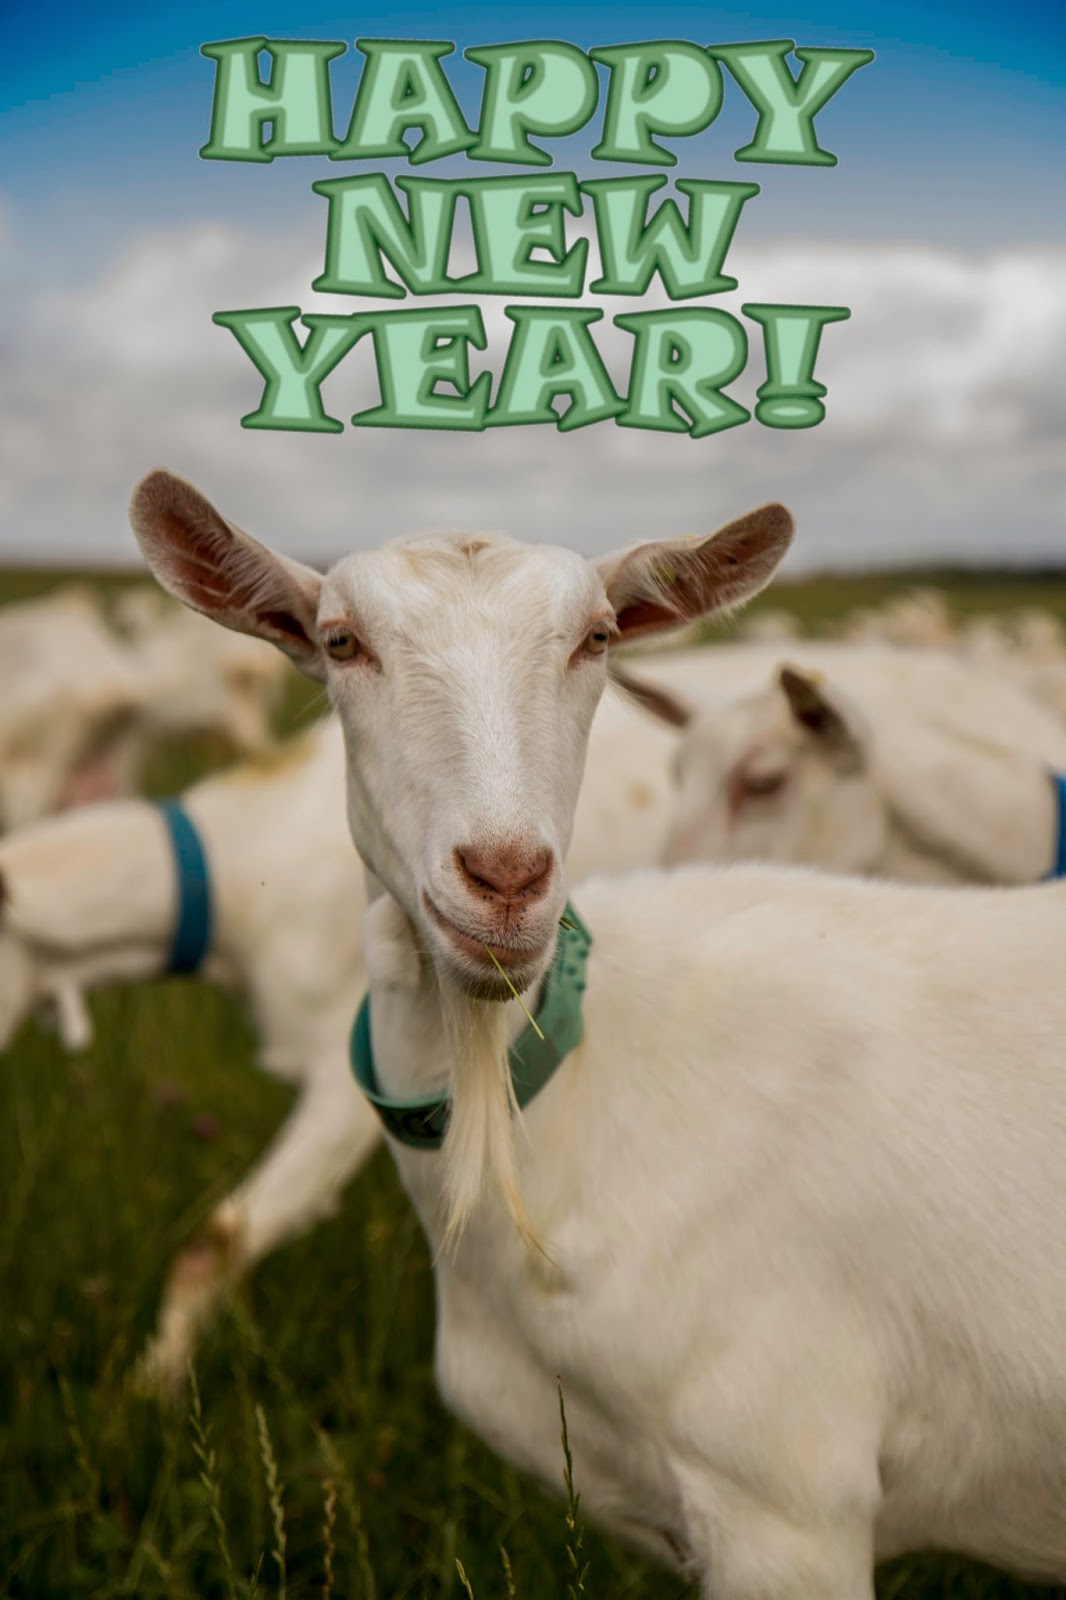 hope that youre all having a good one heres a happy new year goat